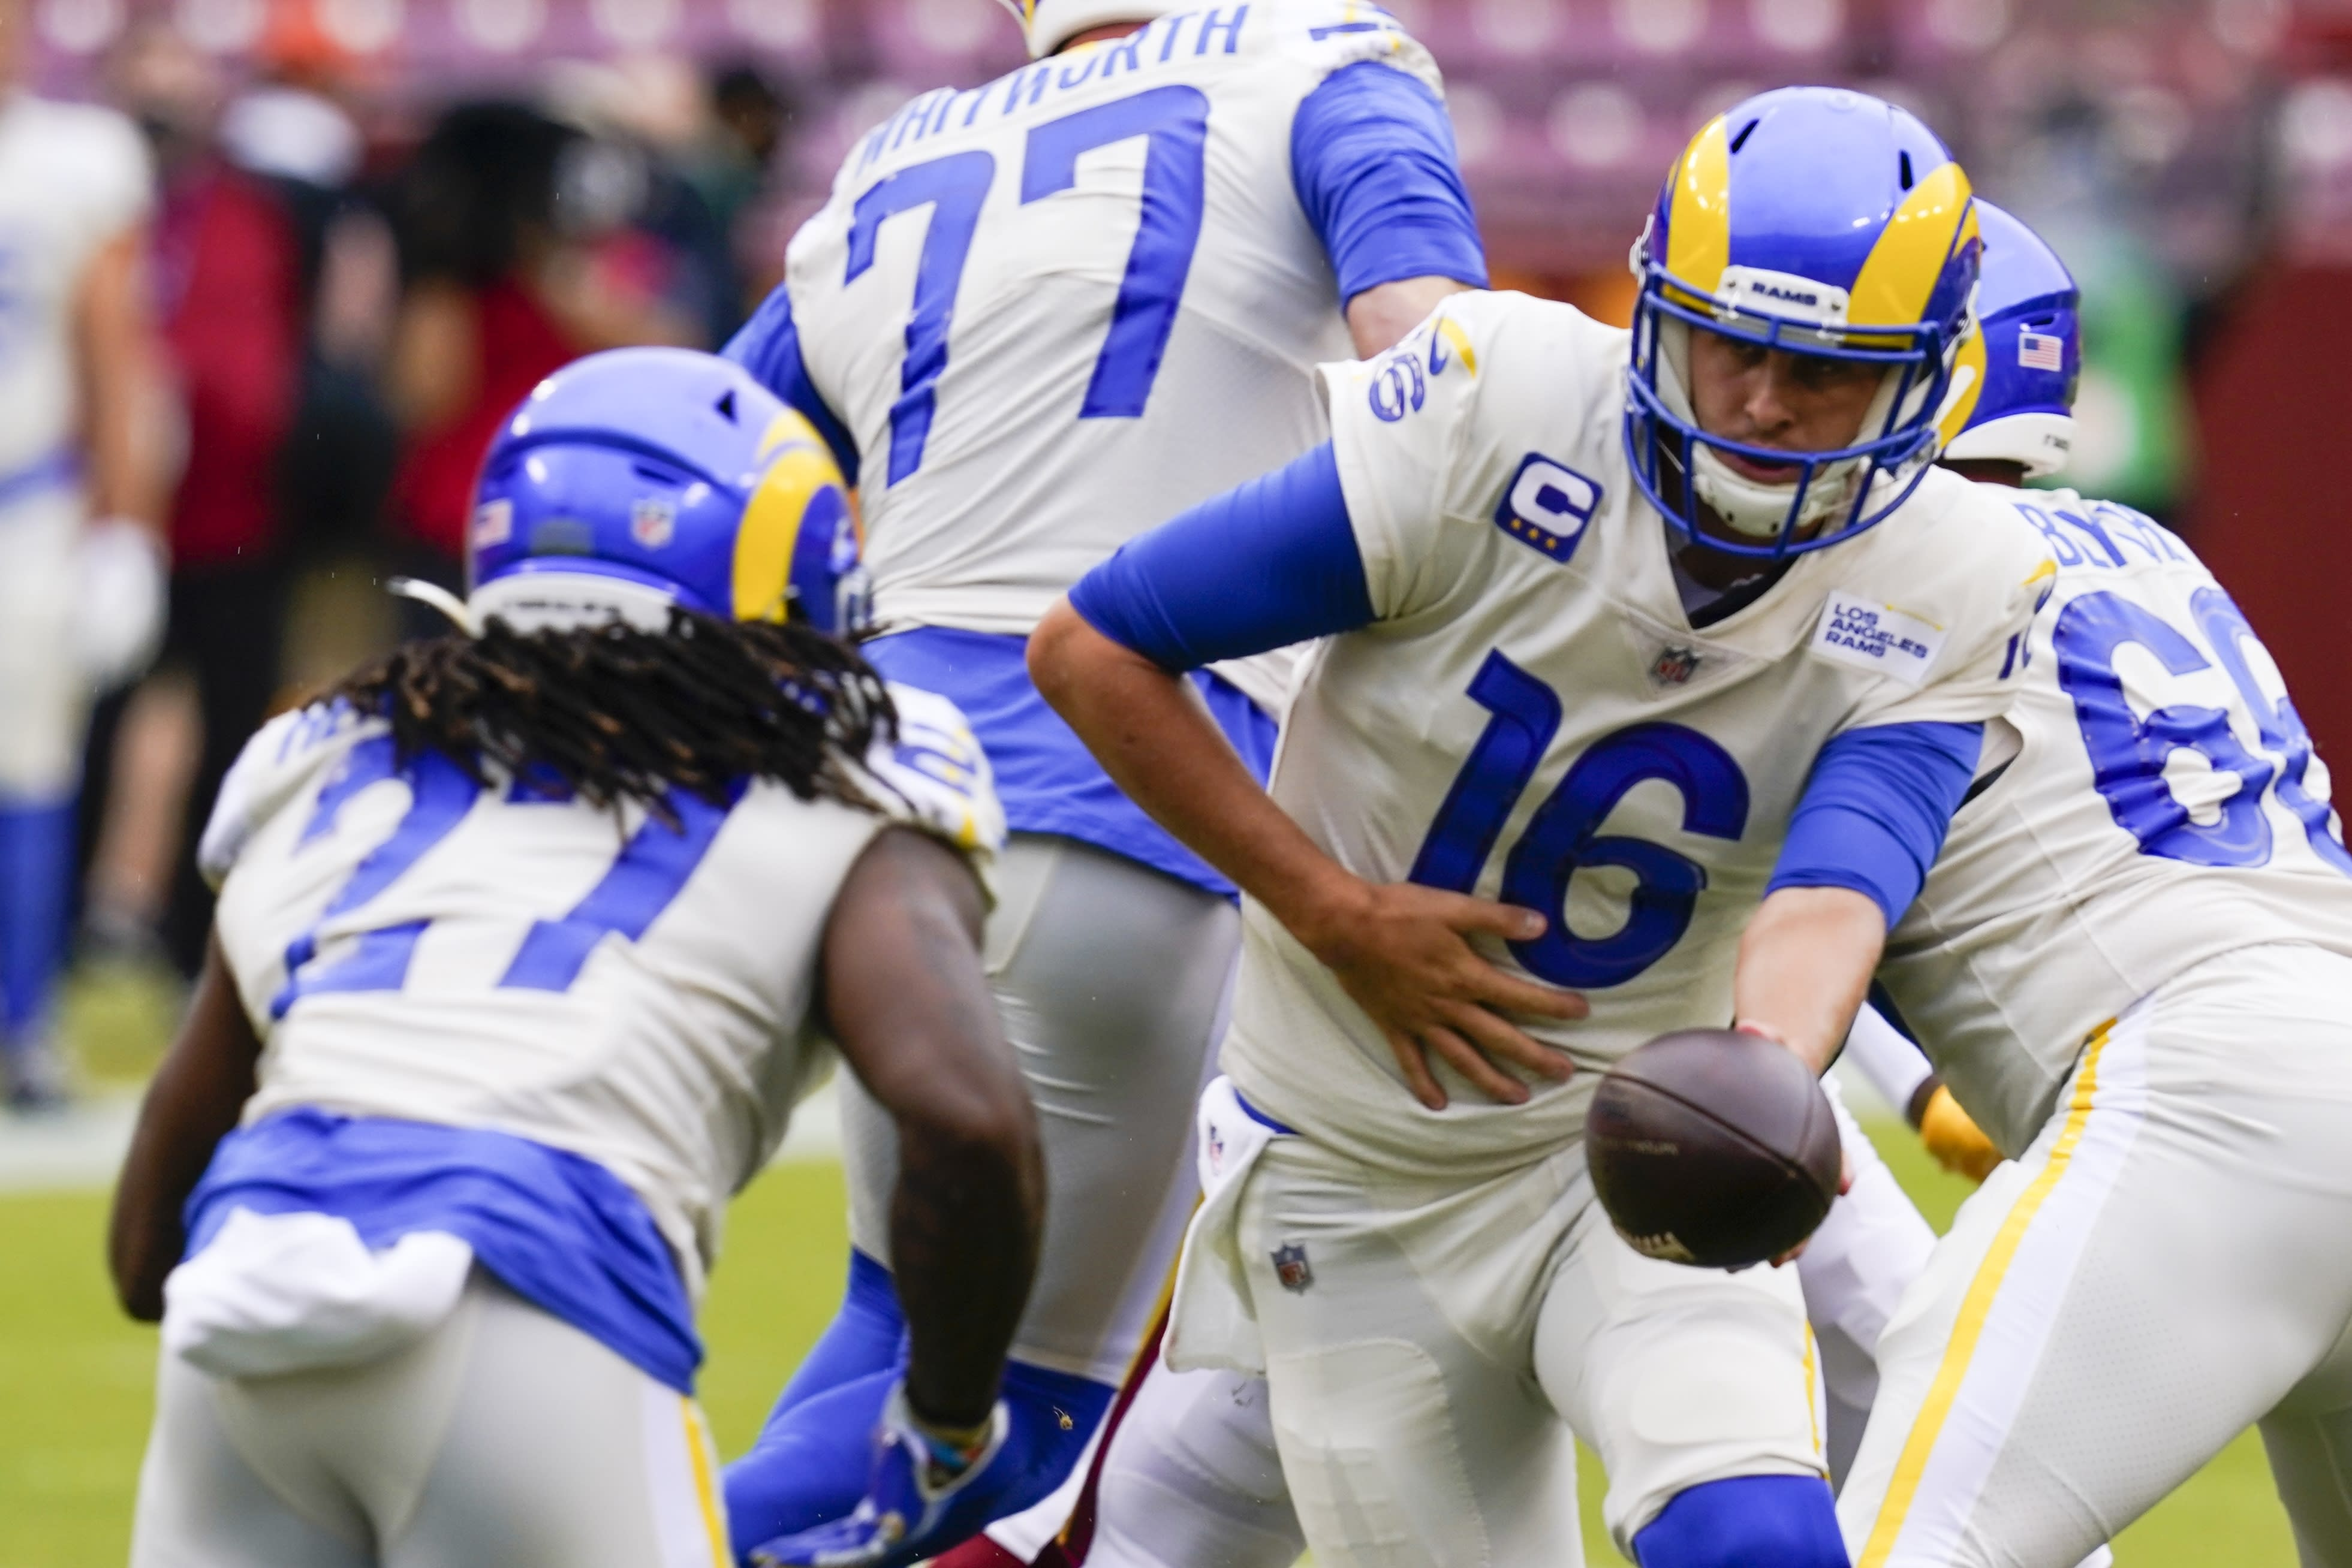 Los Angeles Rams' Jared Goff (16) hands off to Darrell Henderson (27) during the first half of an NFL football game against the Washington Football Team Sunday, Oct. 11, 2020, in Landover, Md. (AP Photo/Steve Helber)